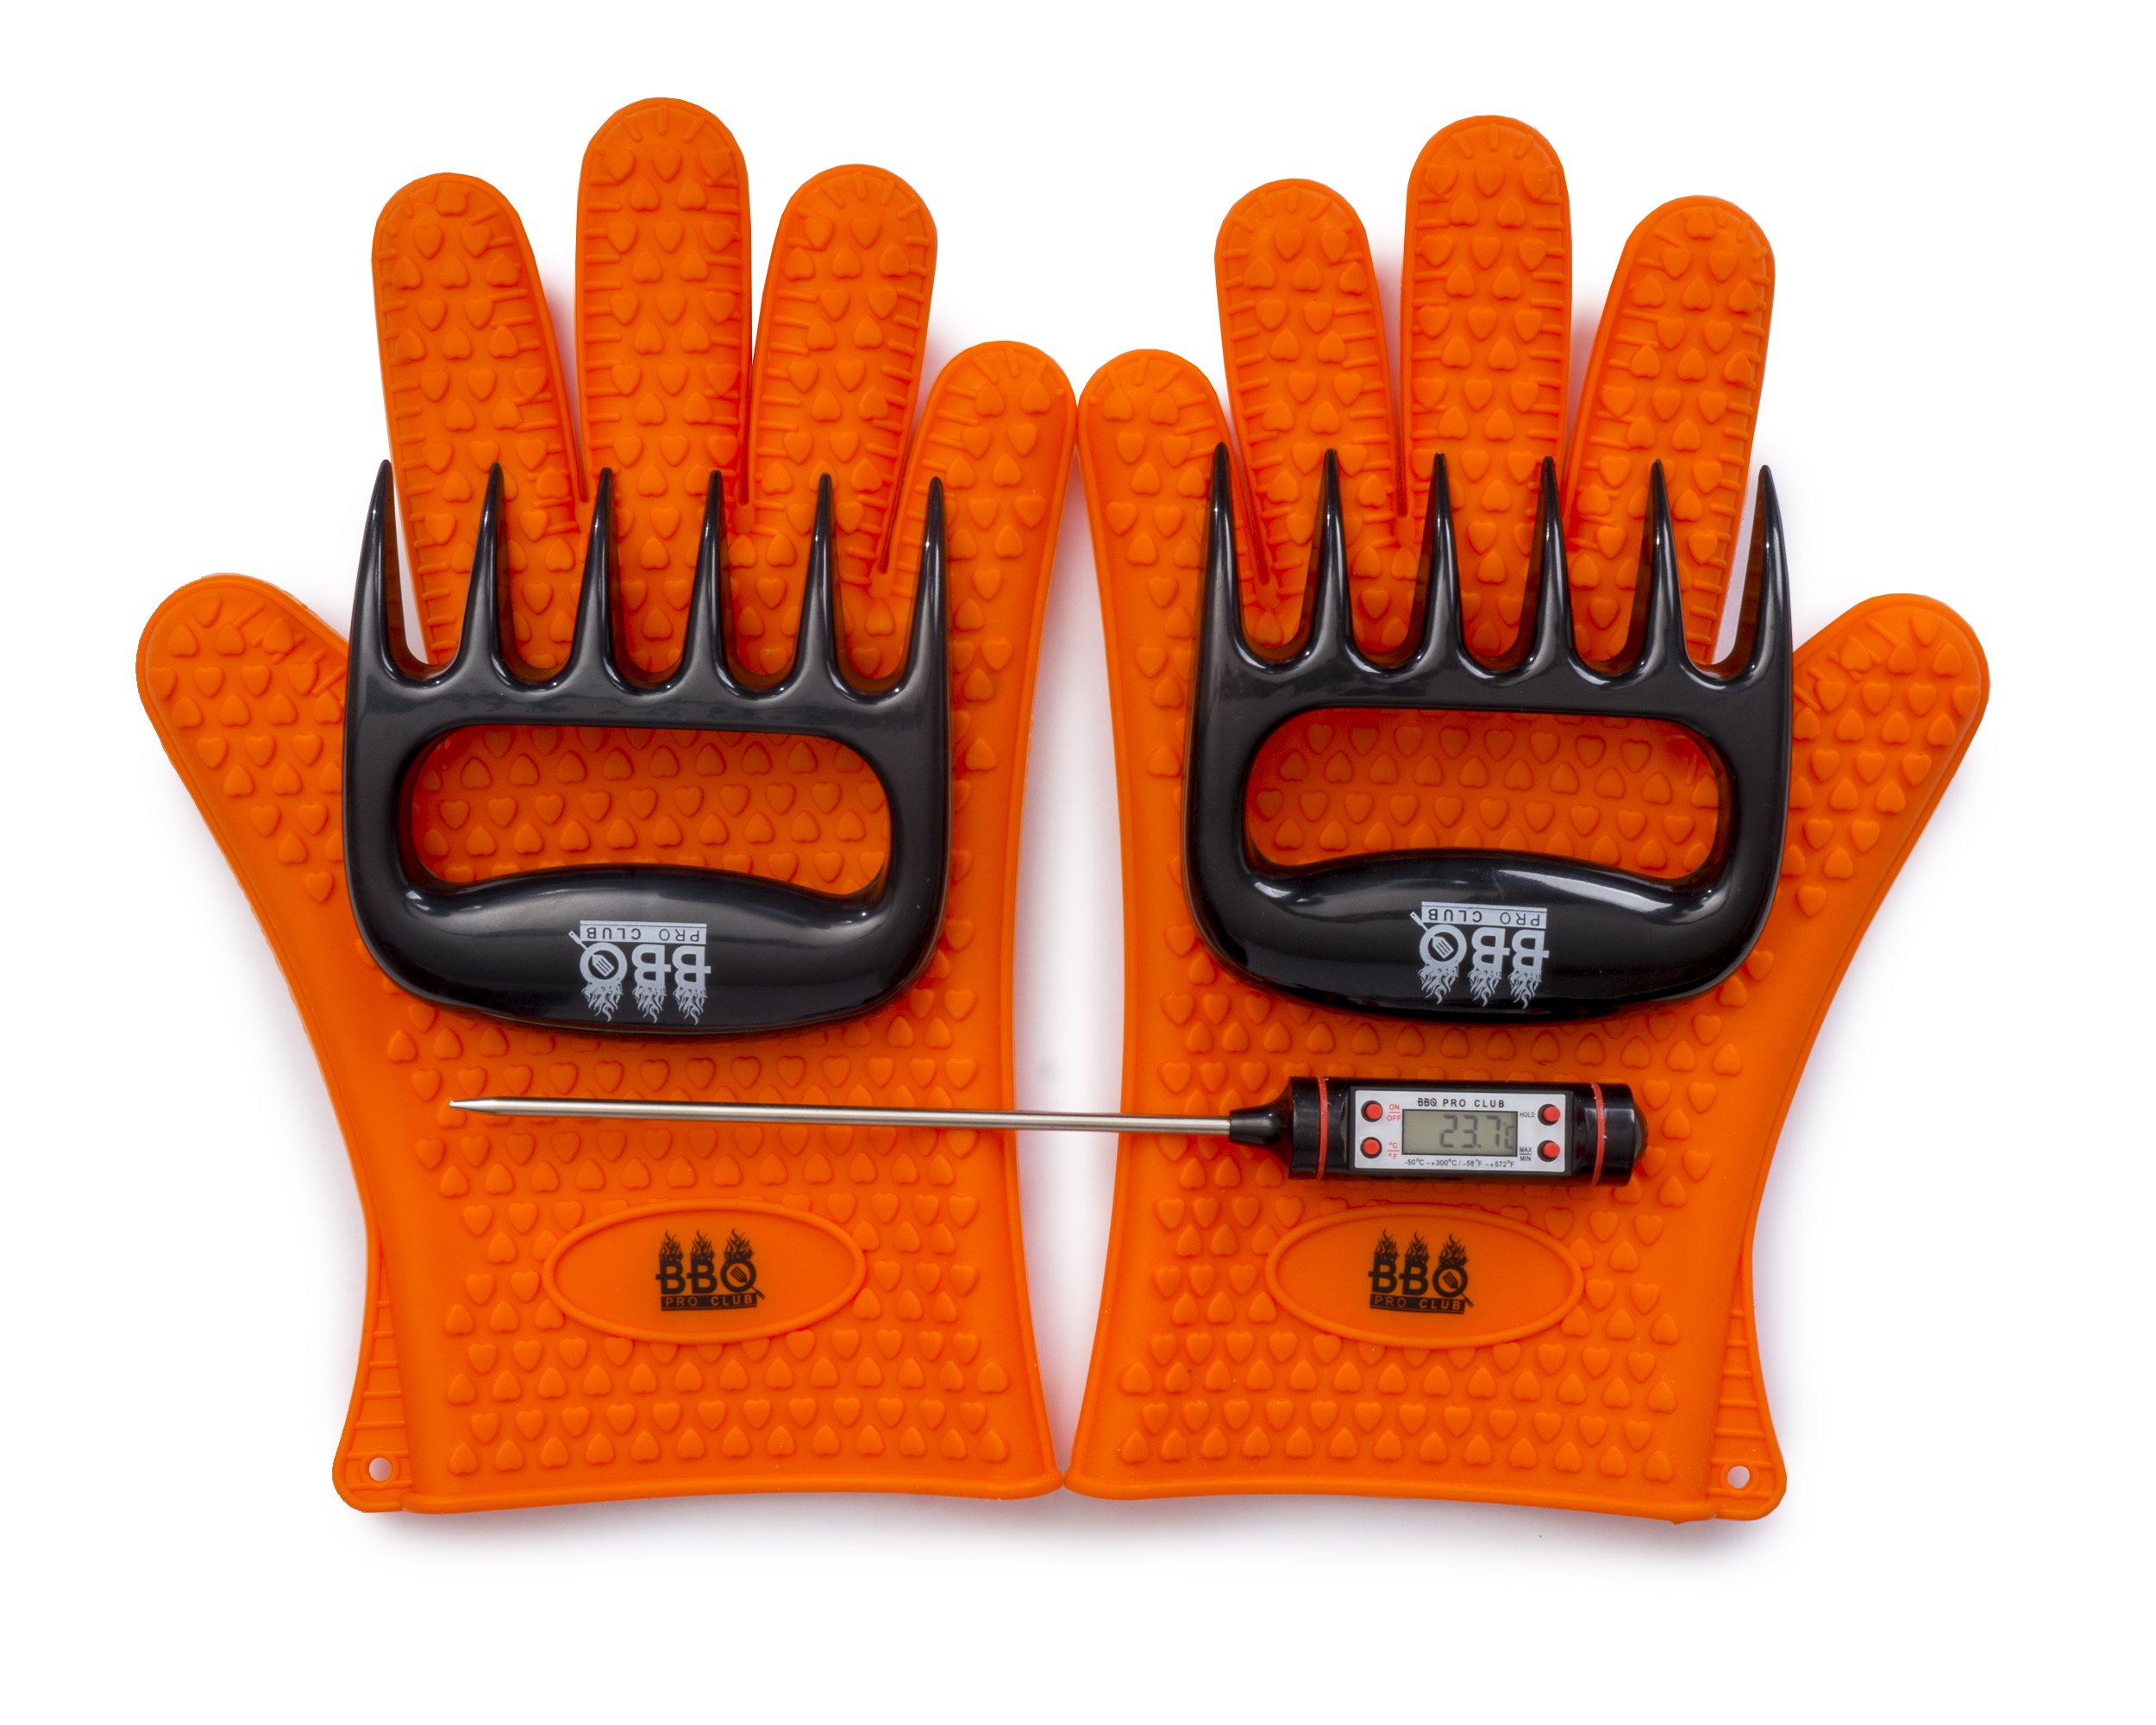 BBQ Gloves Digital Instant Thermometer